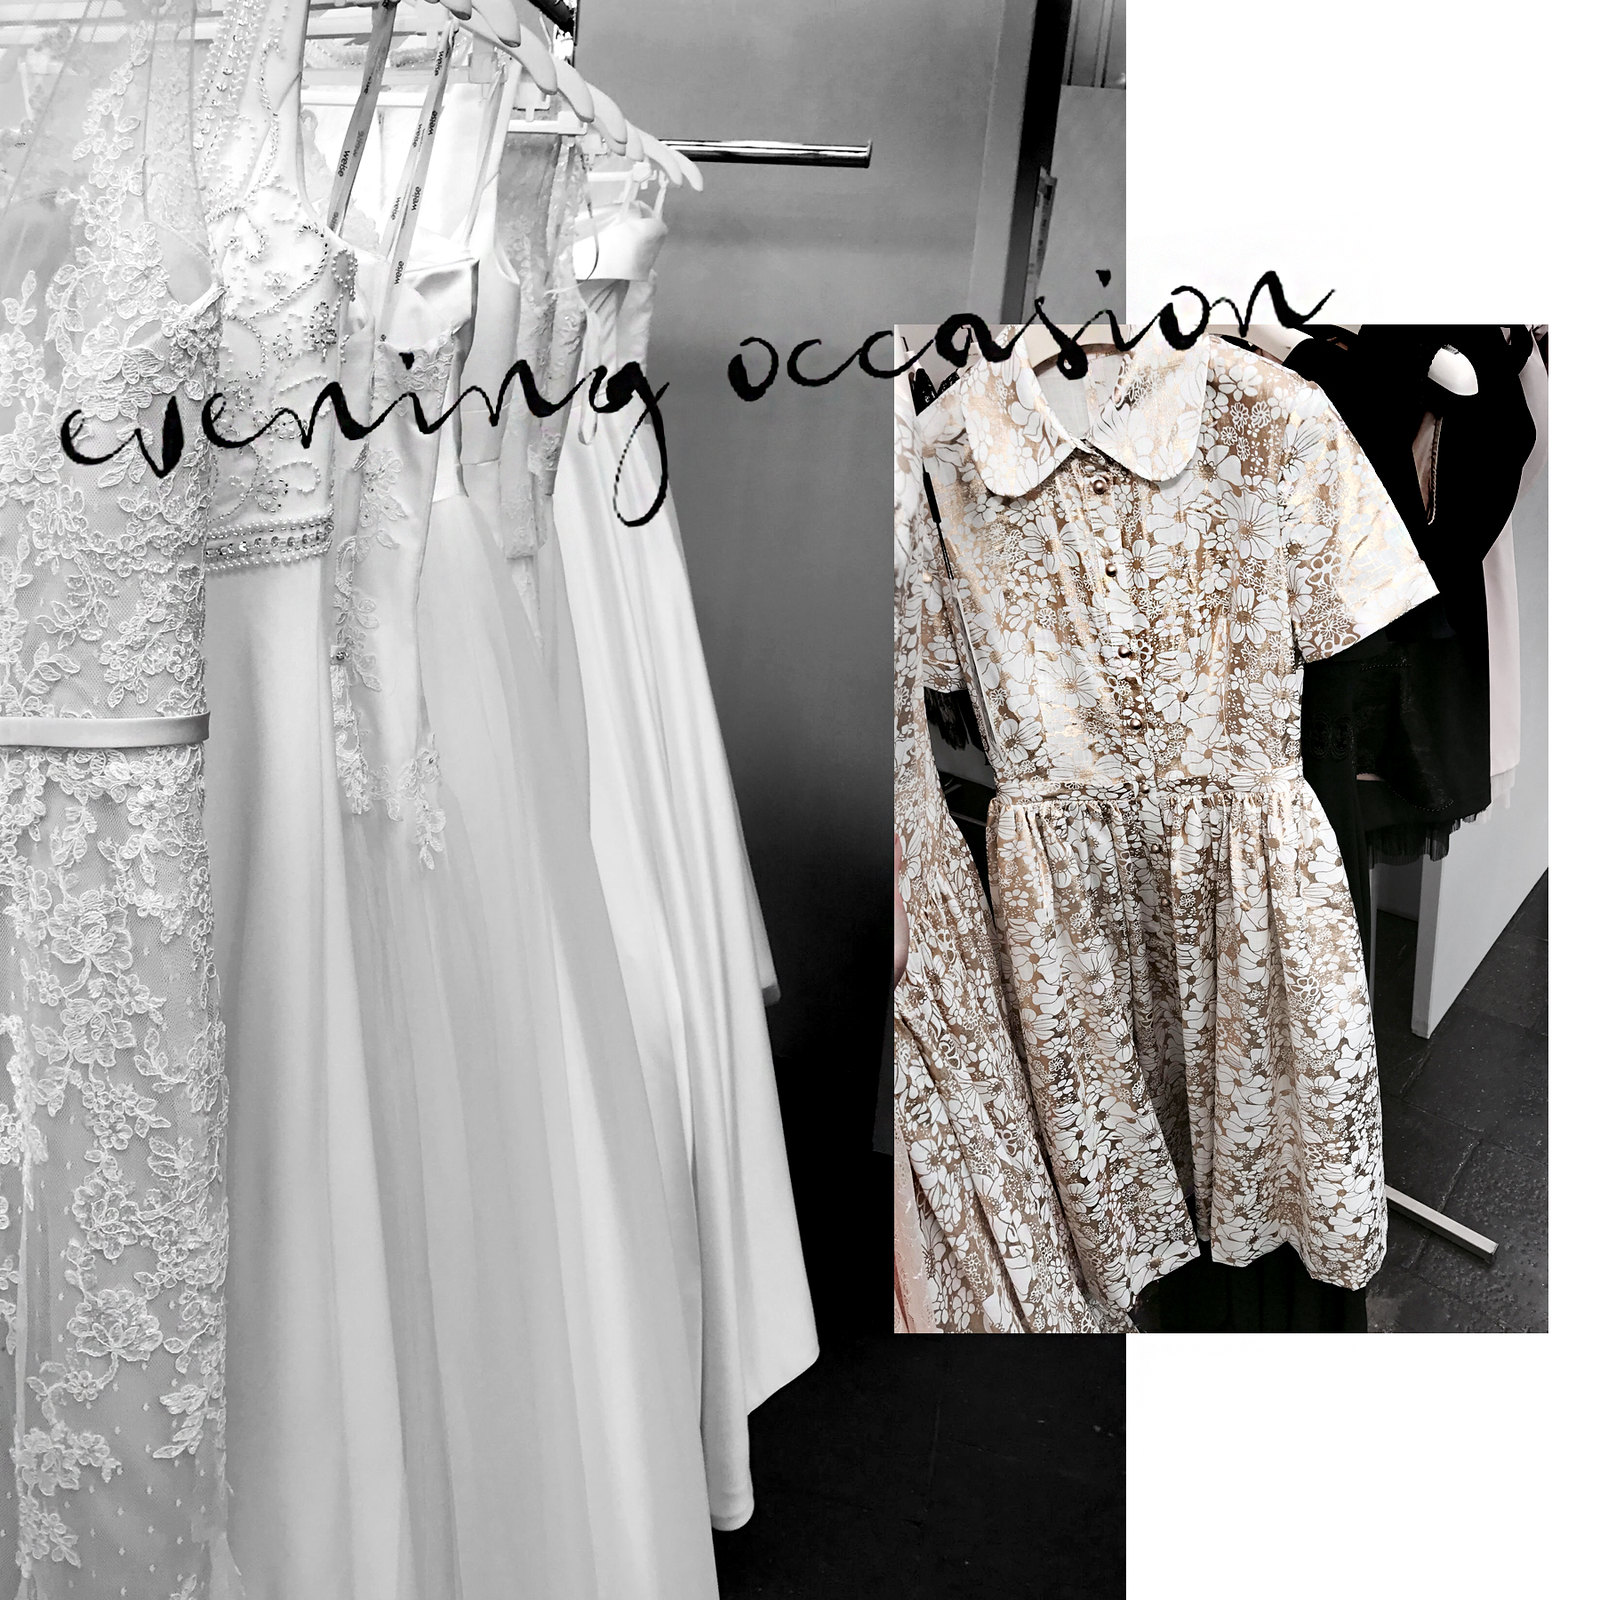 gallery messe düsseldorf trade show dusseldorf fashion evening occasion dresses accessoires shoes wedding white minimal dark rough ootd blogger fashionblogger modeblogger berlin cats & dogs styling blogger ricarda schernus 4